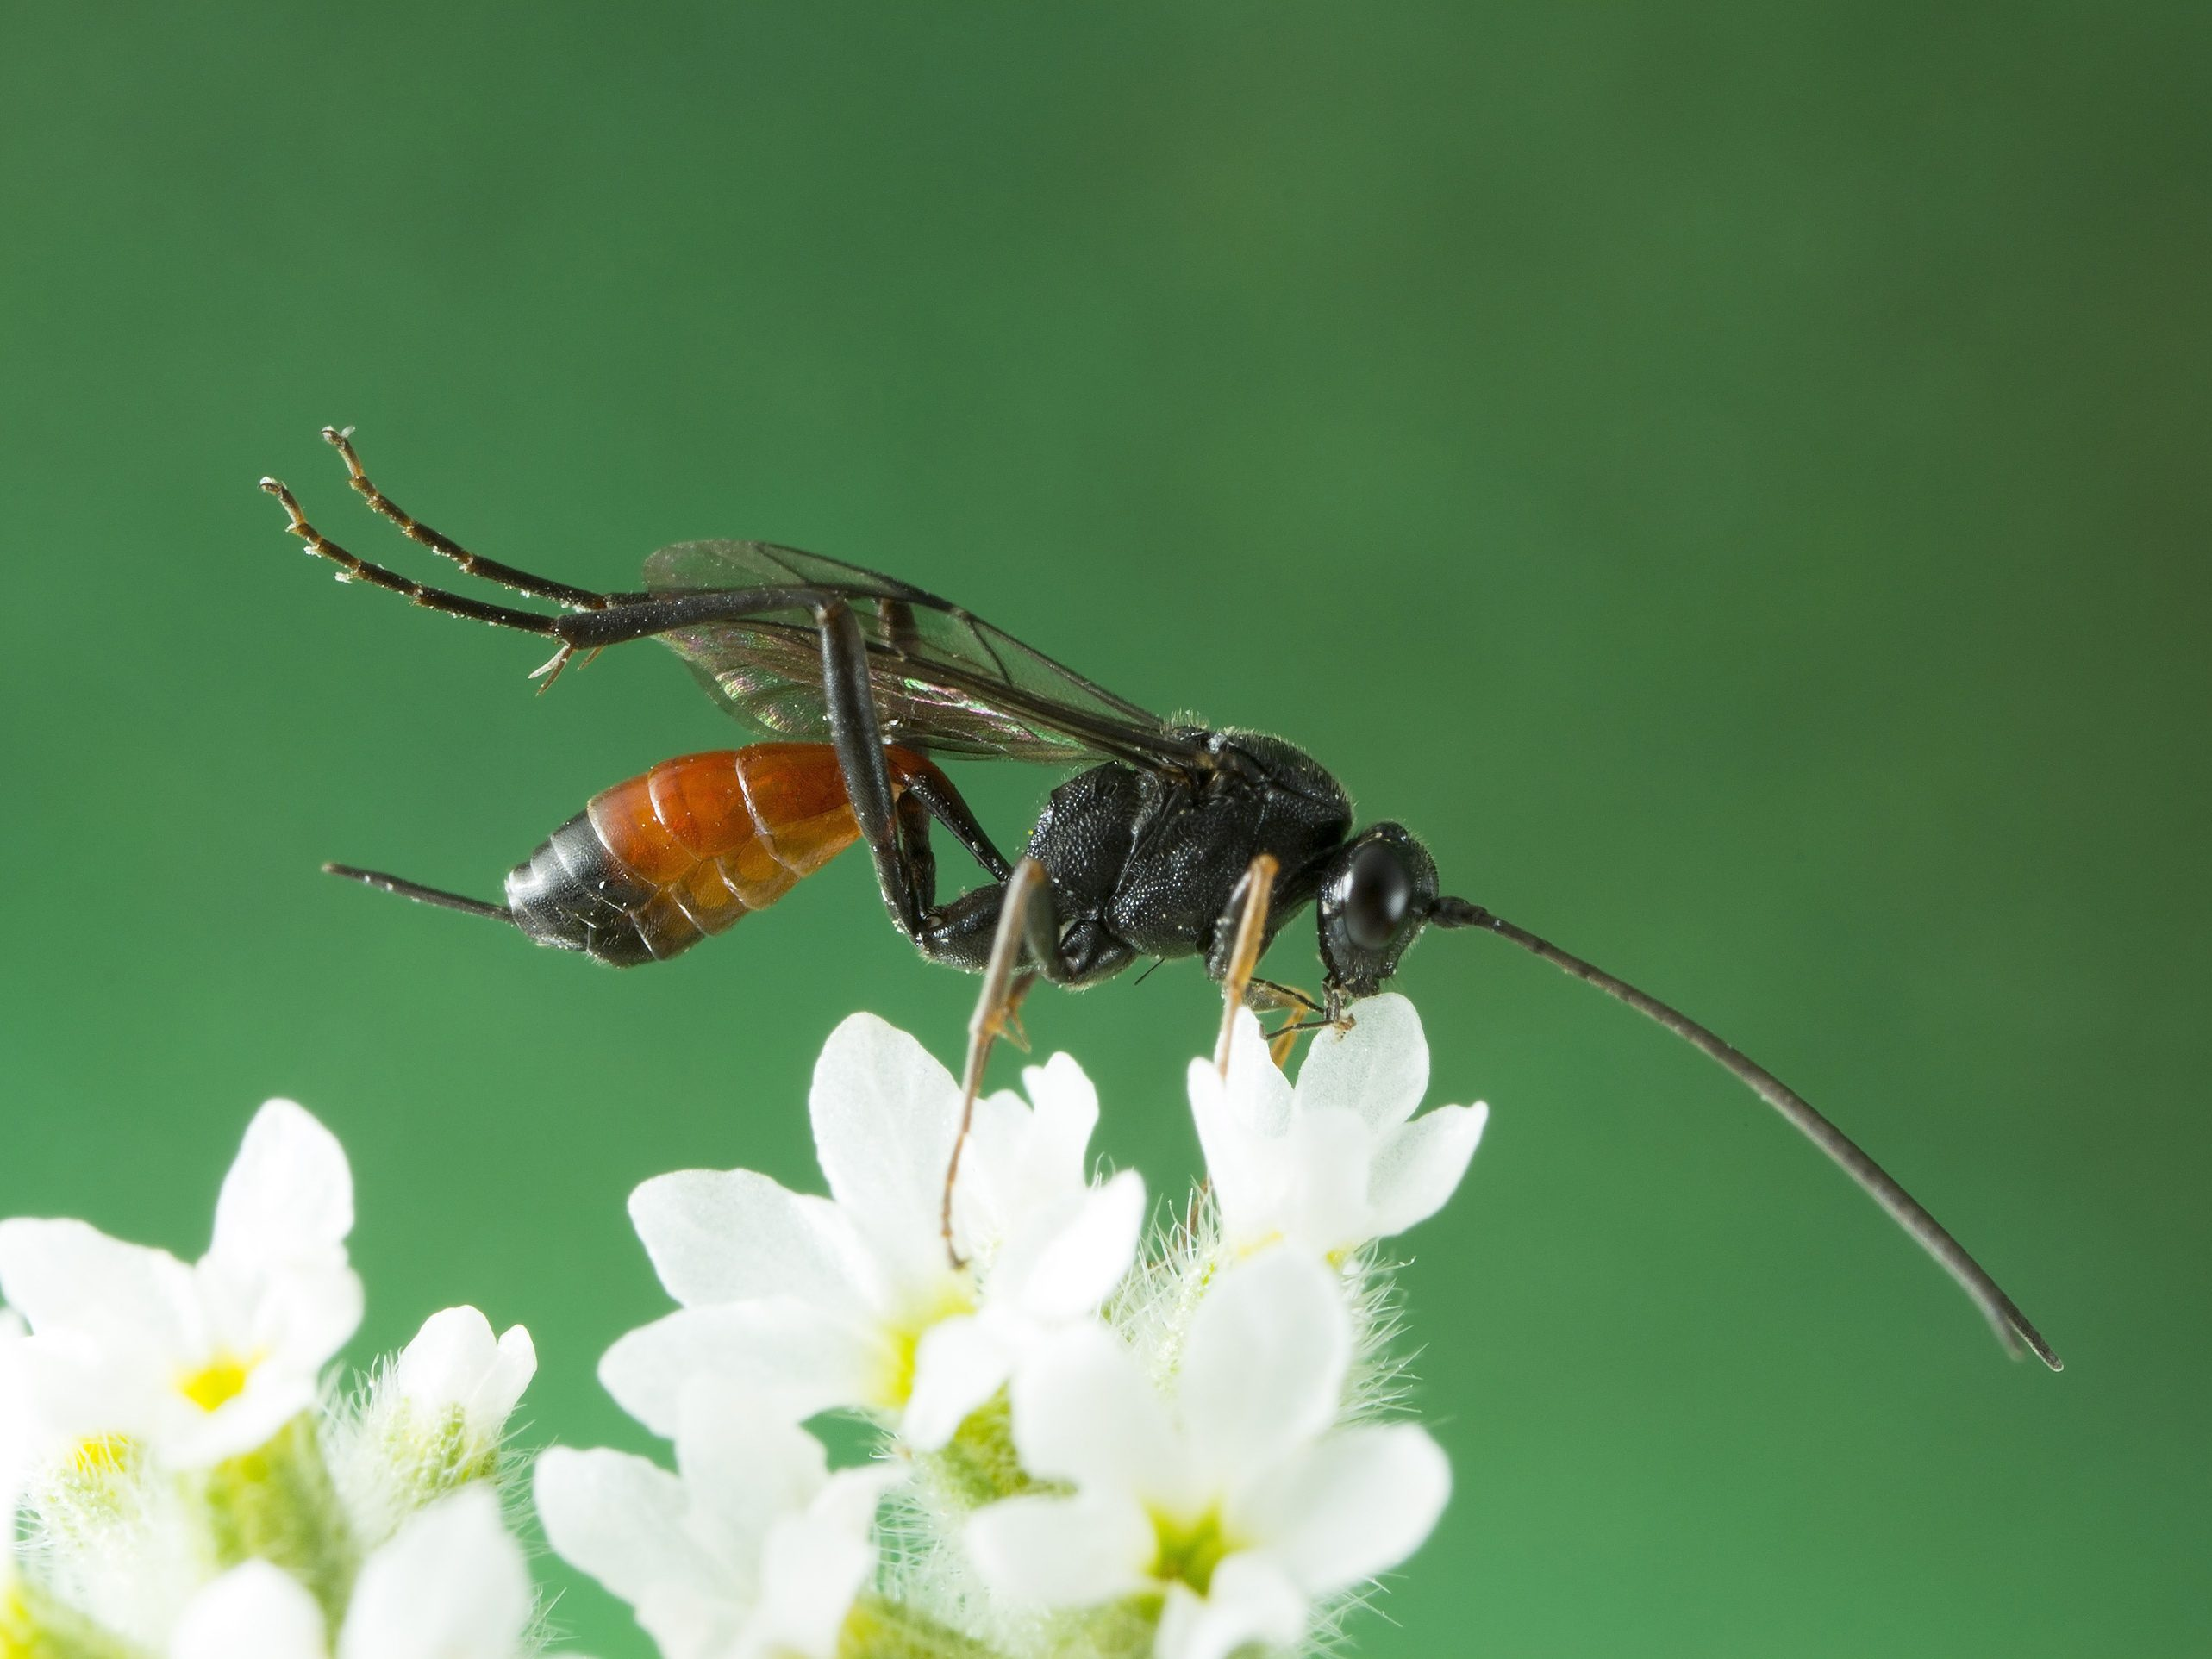 6. Parasitic Wasps